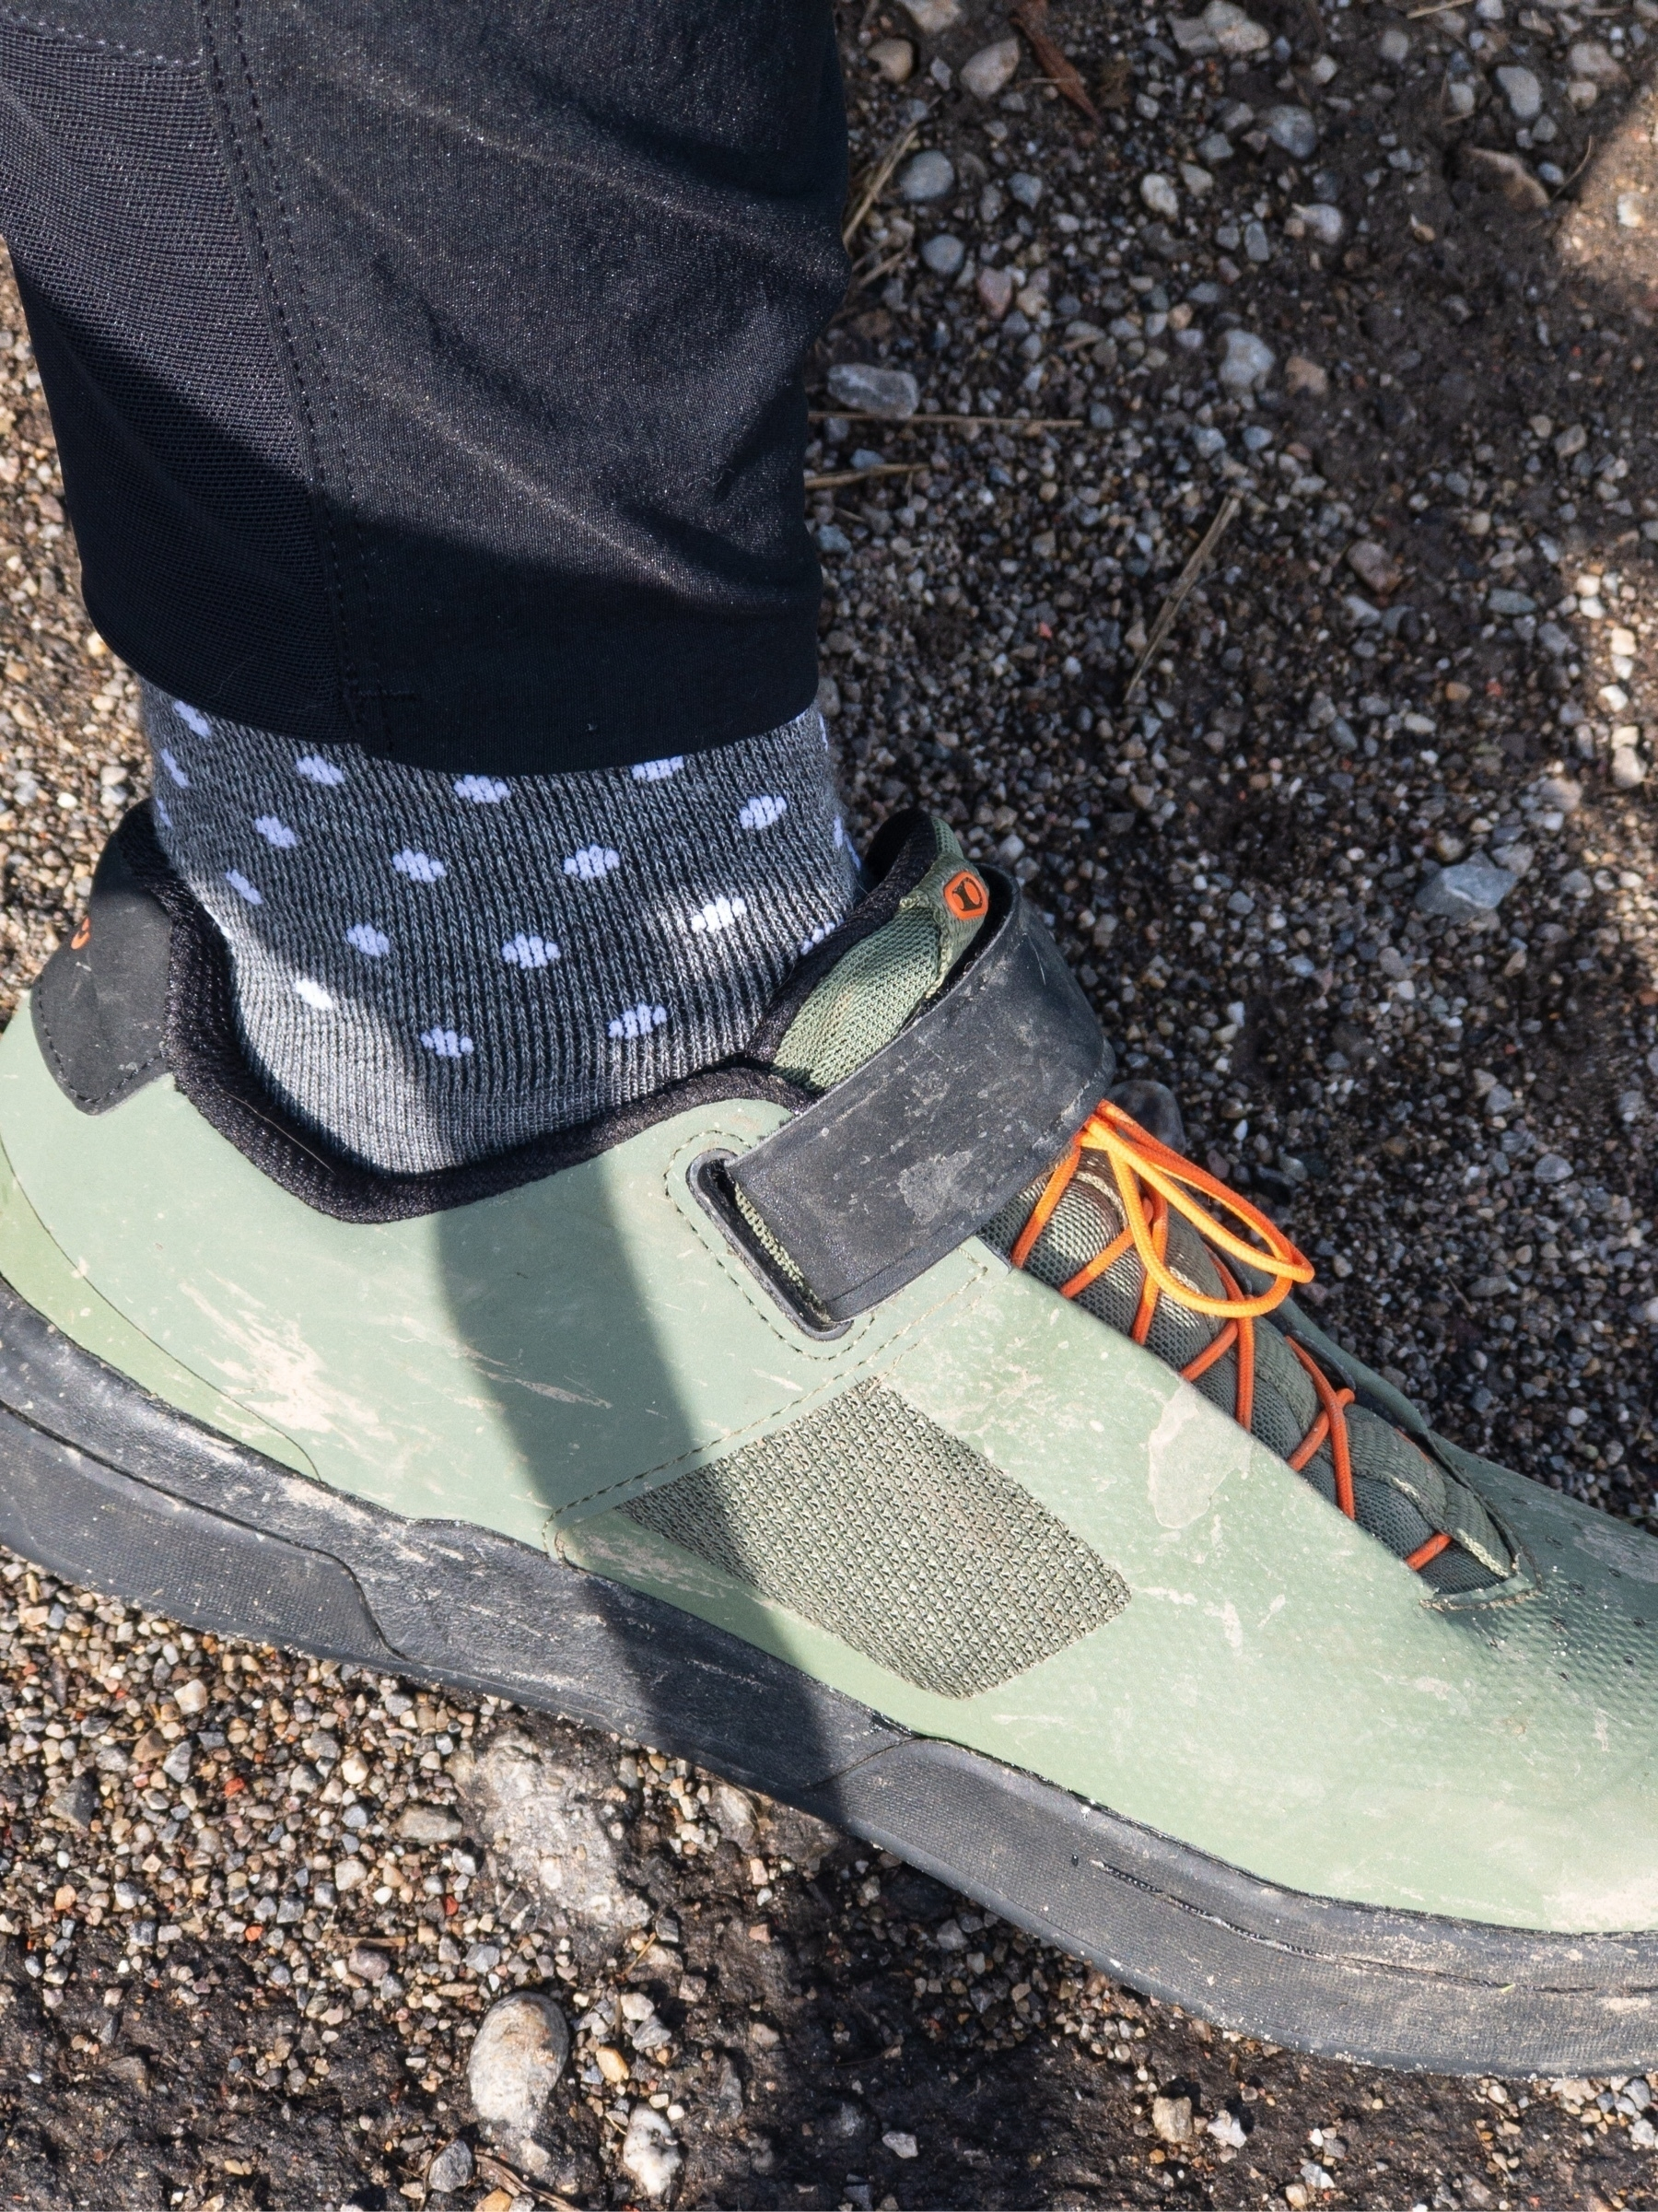 Close-up (from the side) of grey socks with white polka dots in olive green mountain bike shoes.